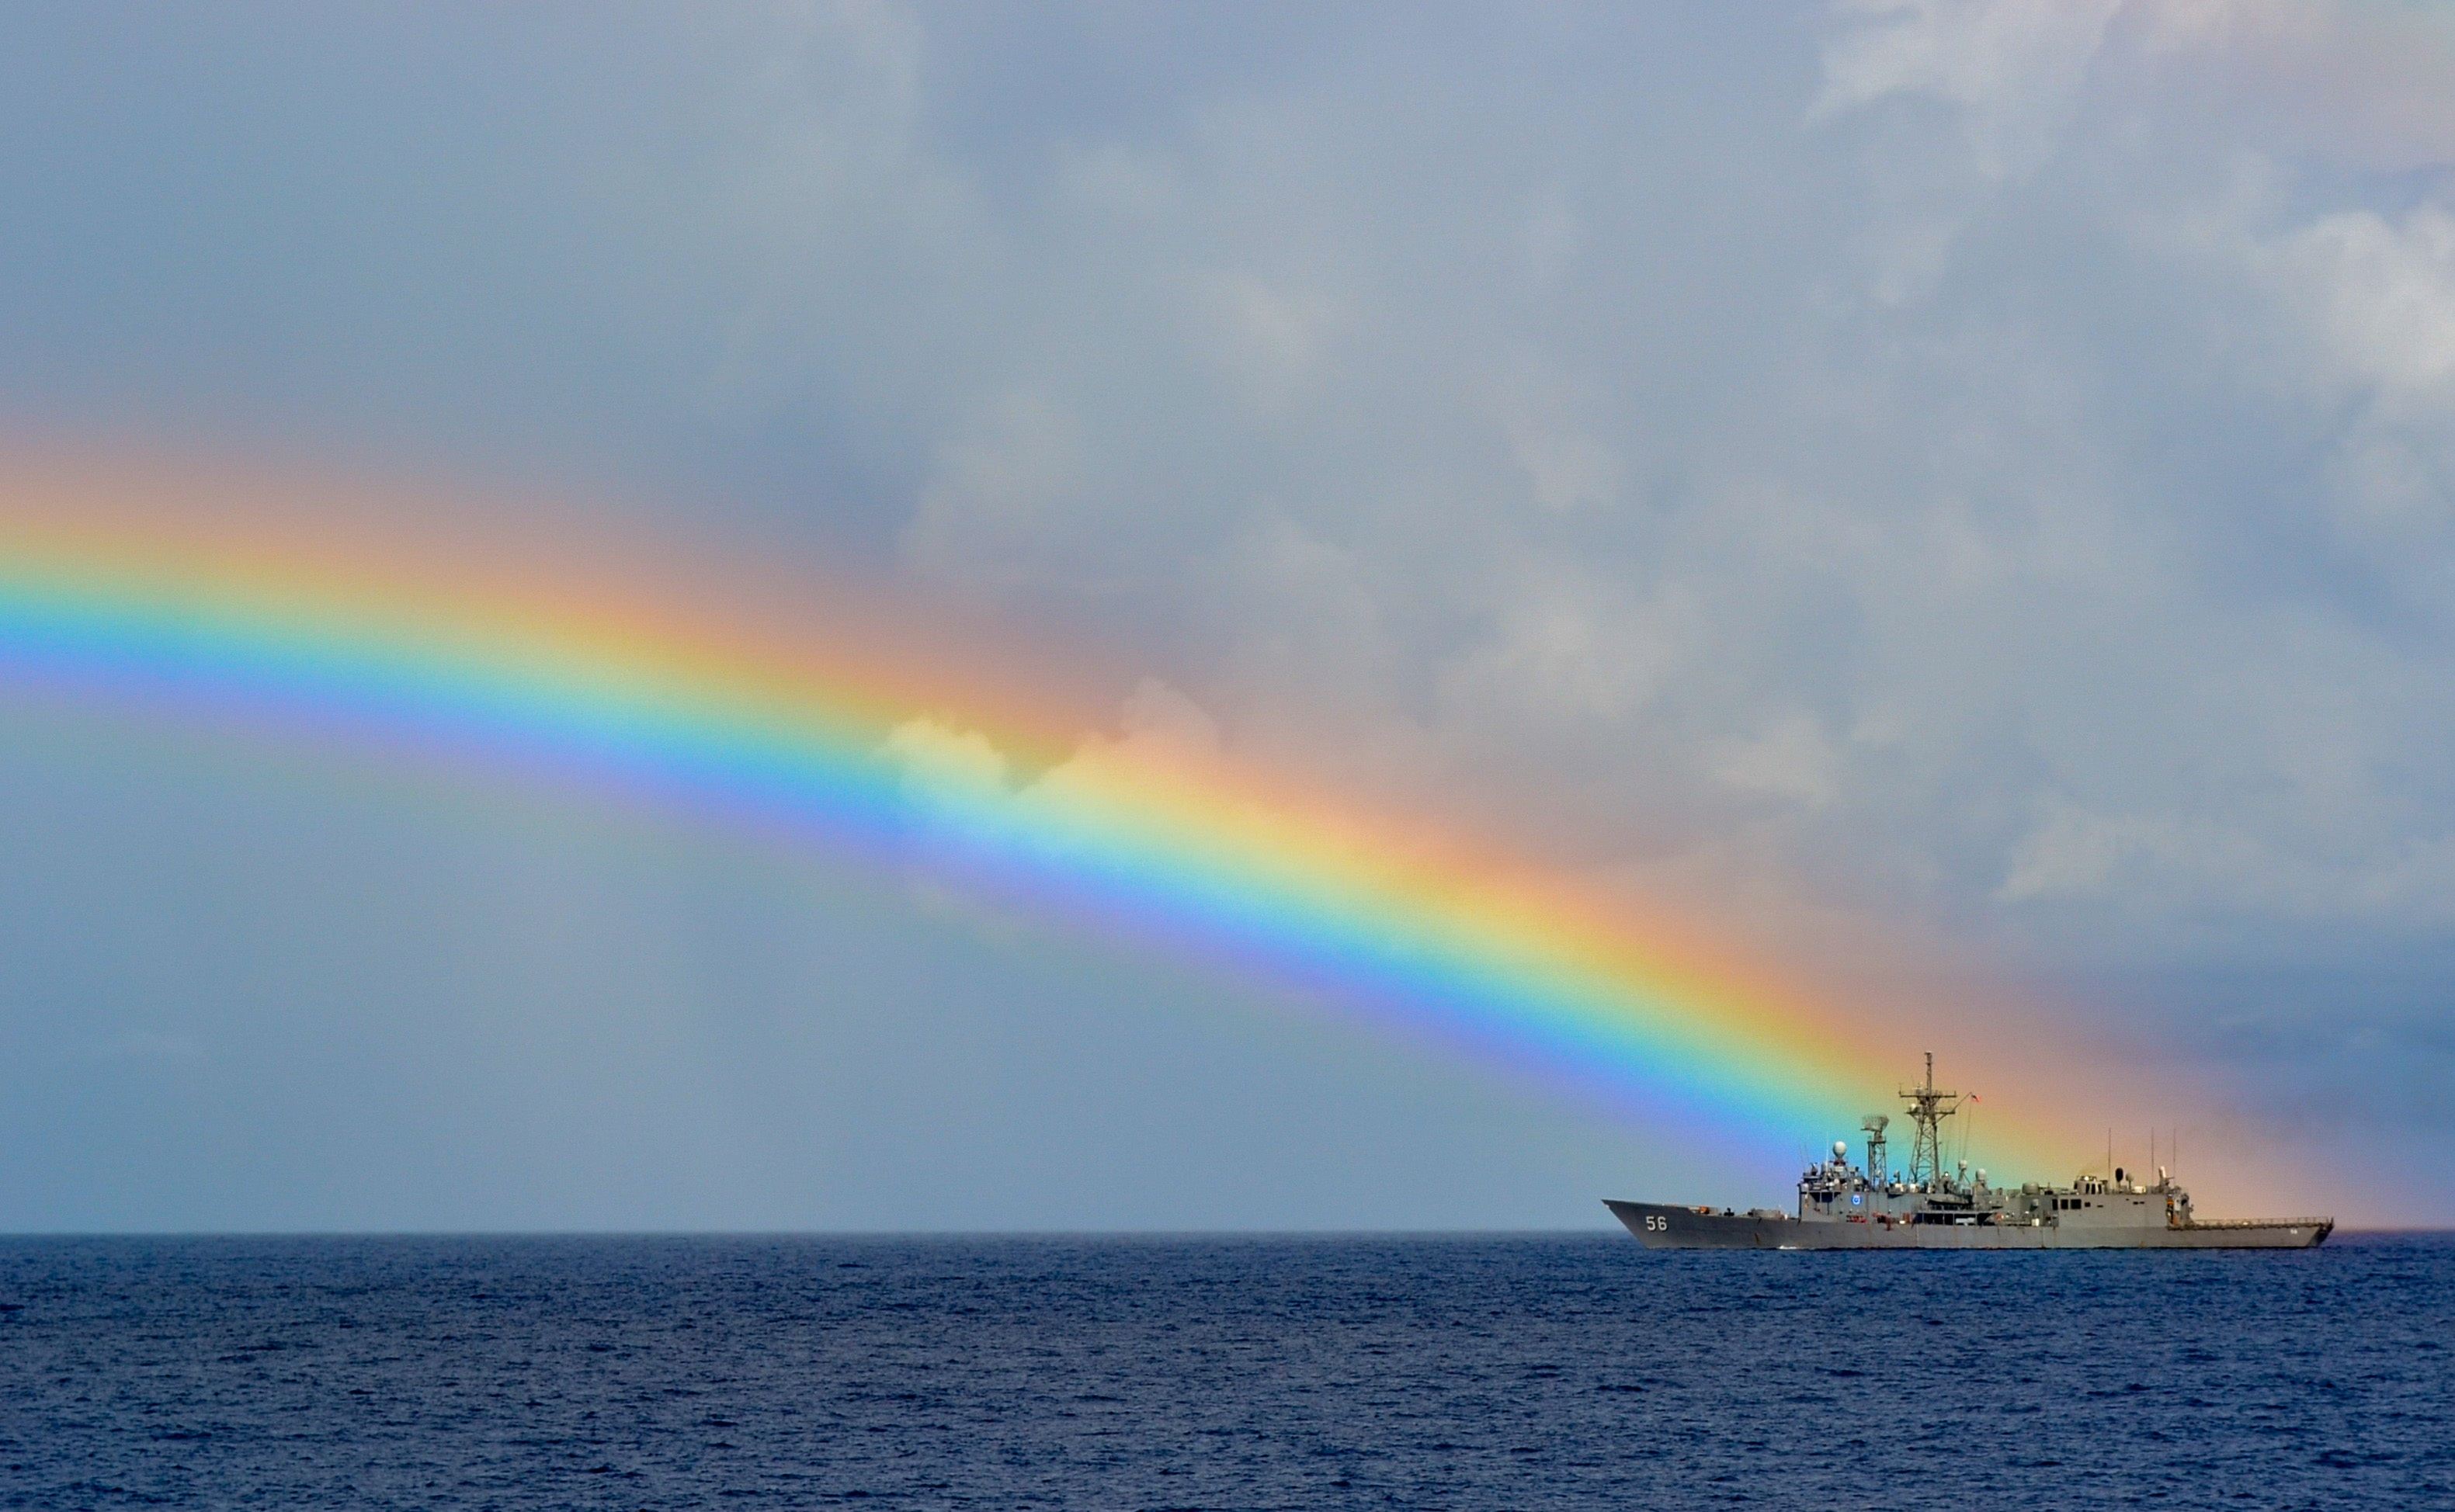 Rainbow on the ocean photo